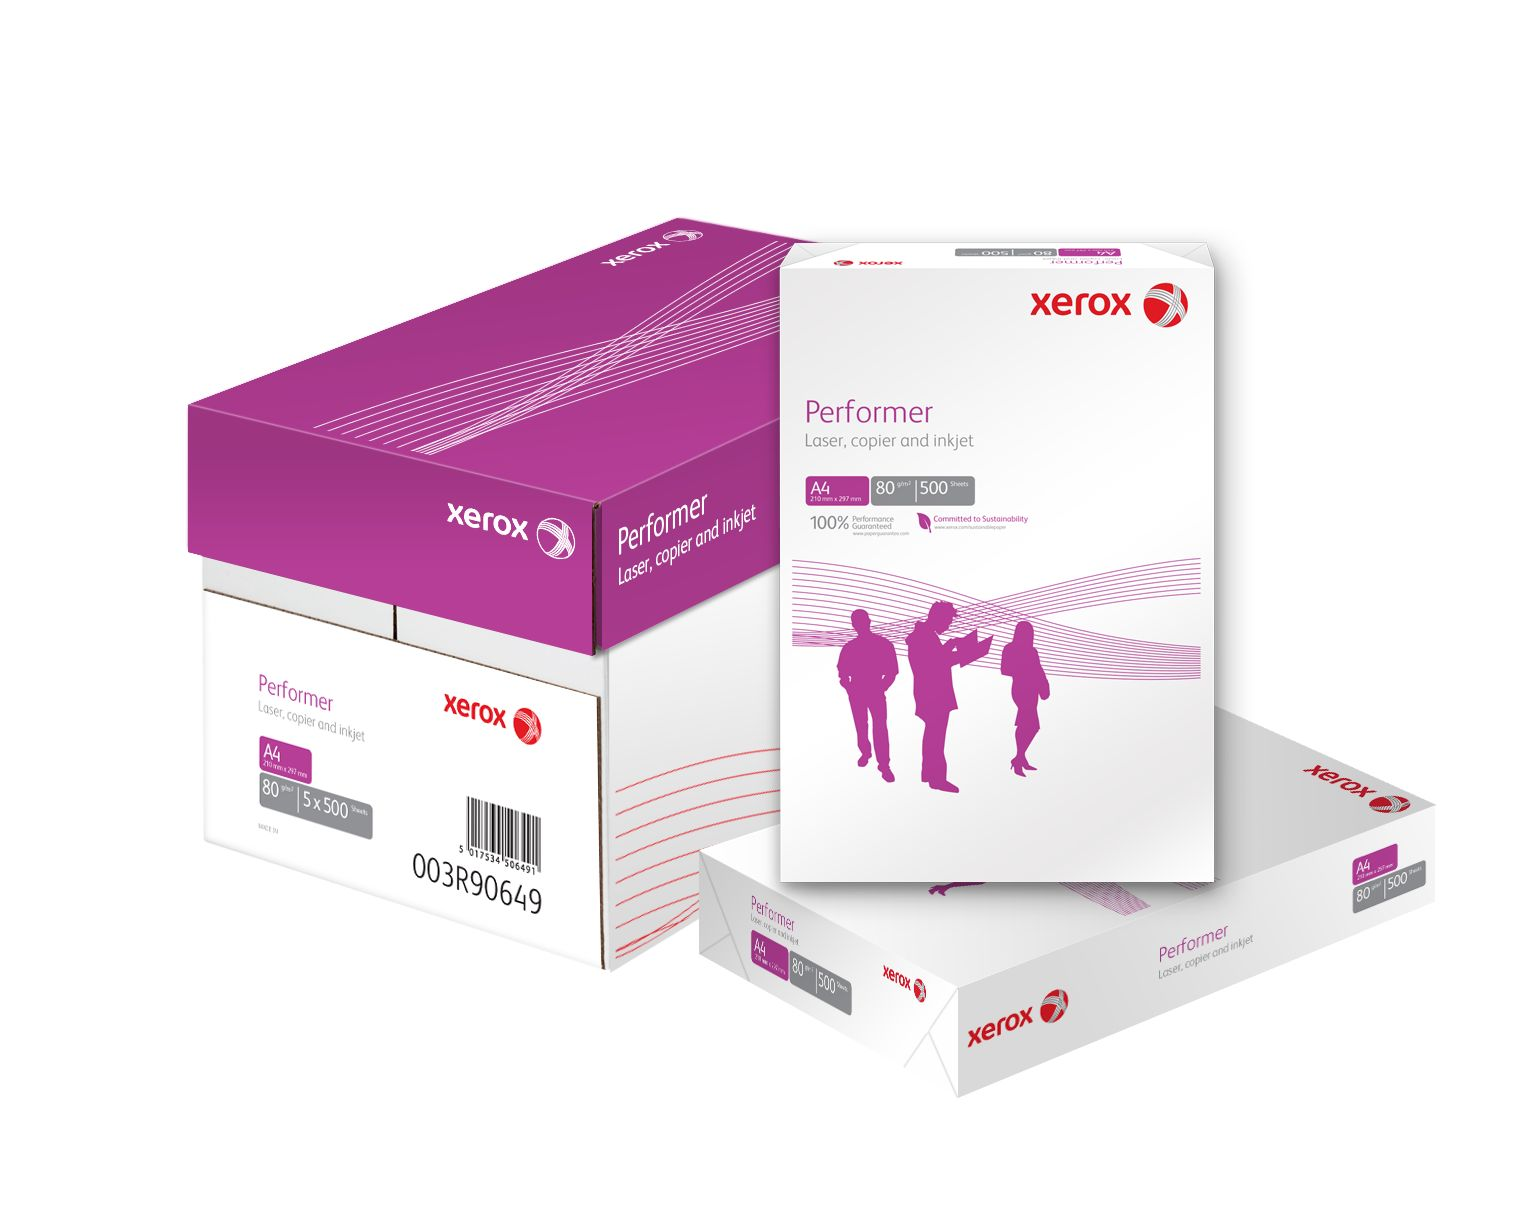 Xerox Performer A4 Office Paper 80gsm